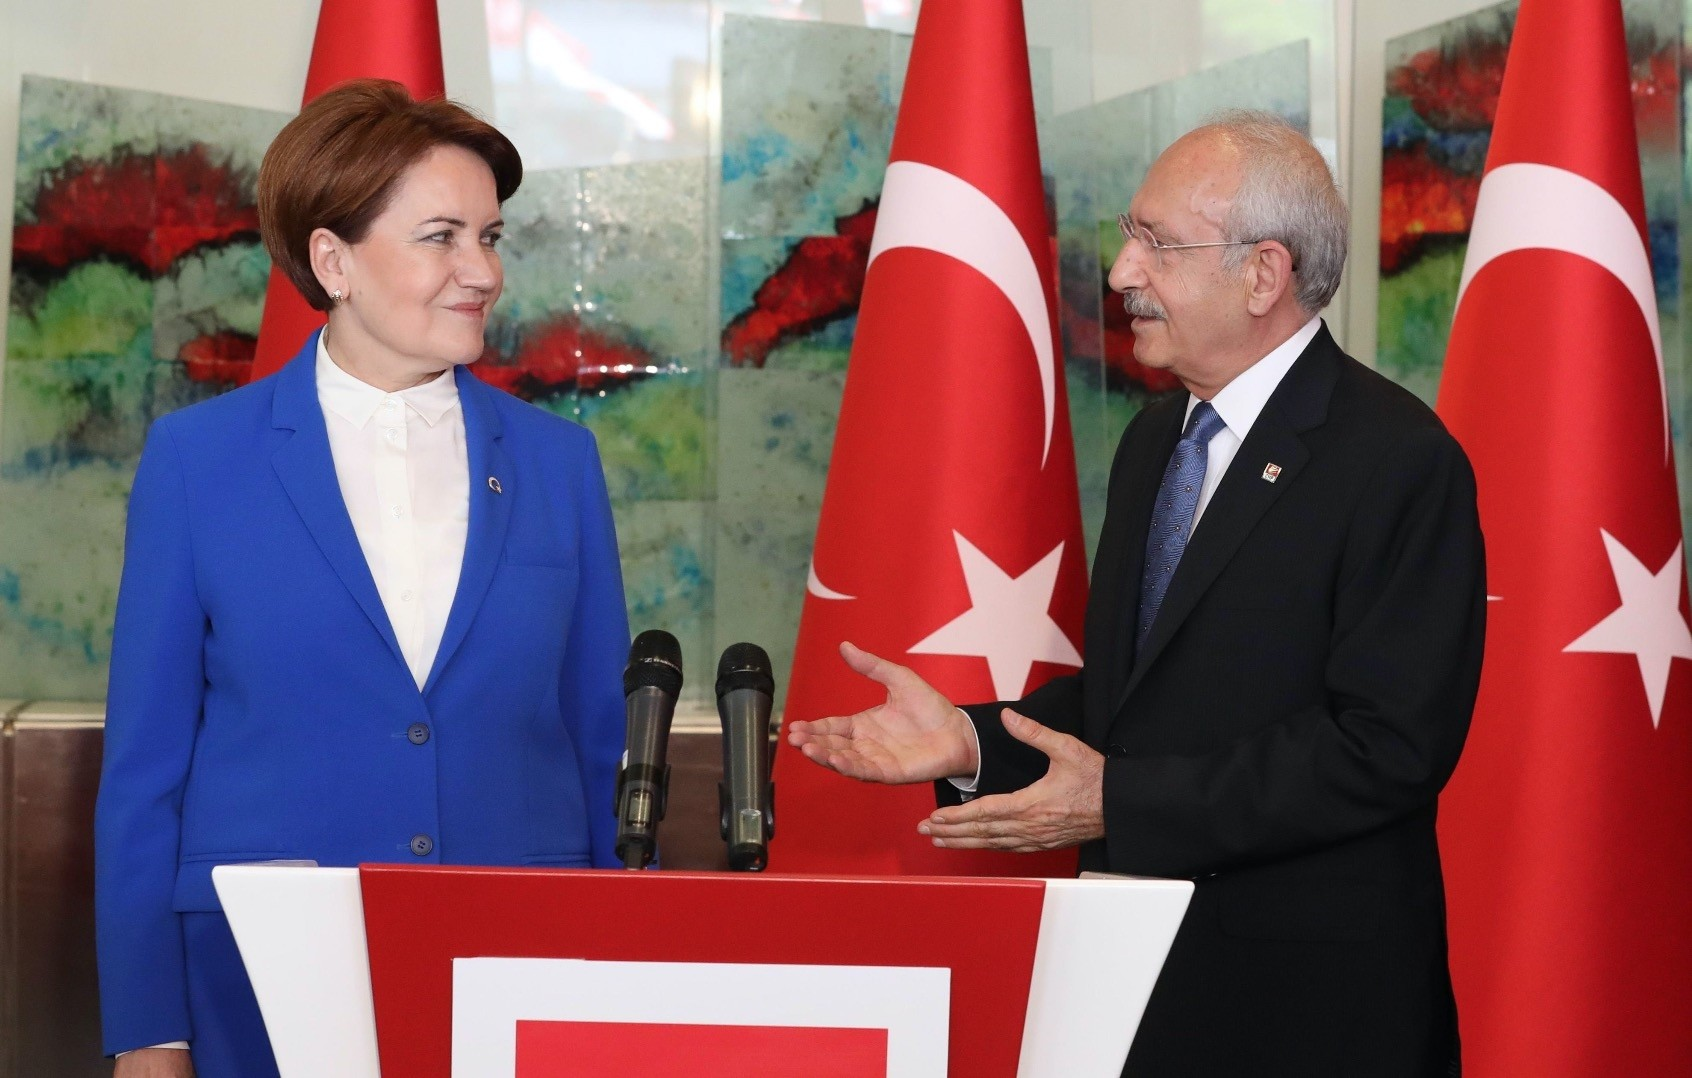 Leader of the main opposition Republican People's Party (CHP) Kemal Ku0131lu0131u00e7darou011flu, with leader and presidential candidate of the opposition Good Party (u0130P), Meral Aku015fener, speak at a meeting at CHP headquarters in Ankara, June 4.